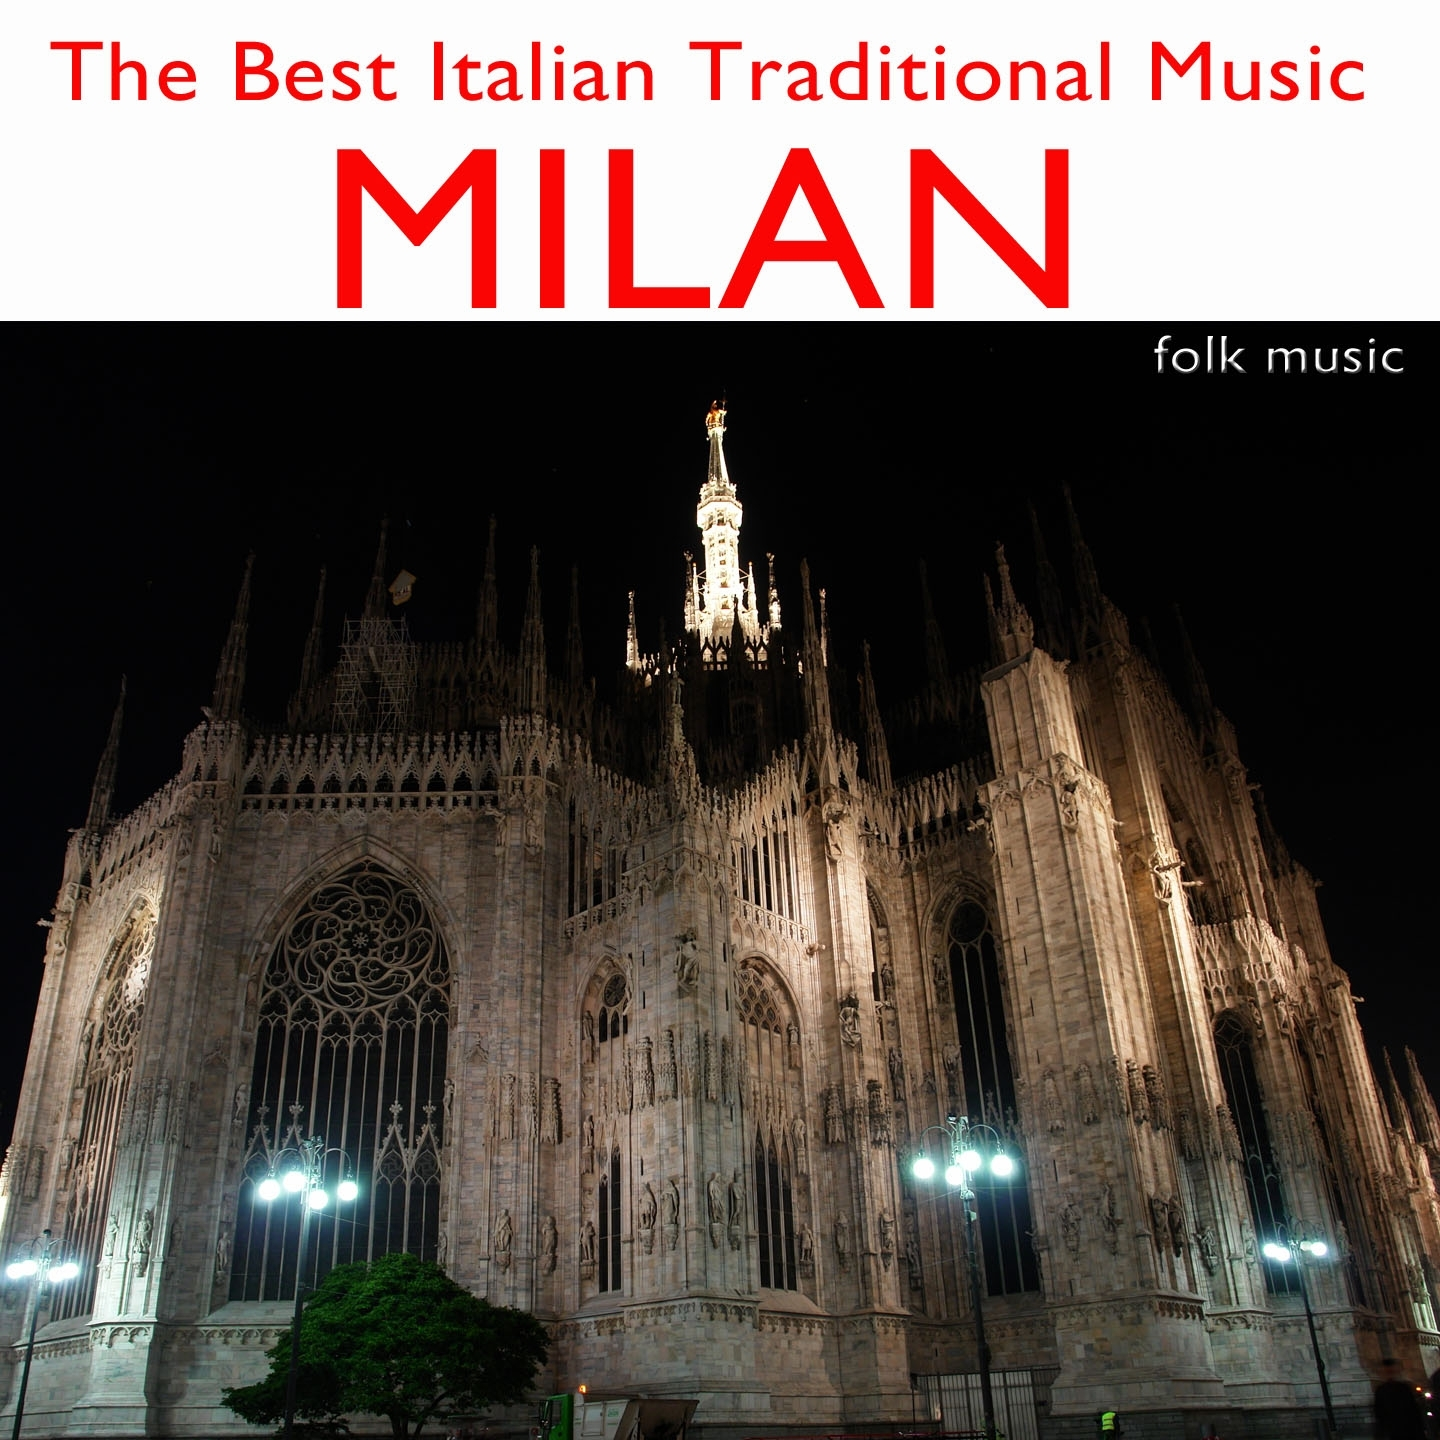 The Best Italian Traditional Music: Milan